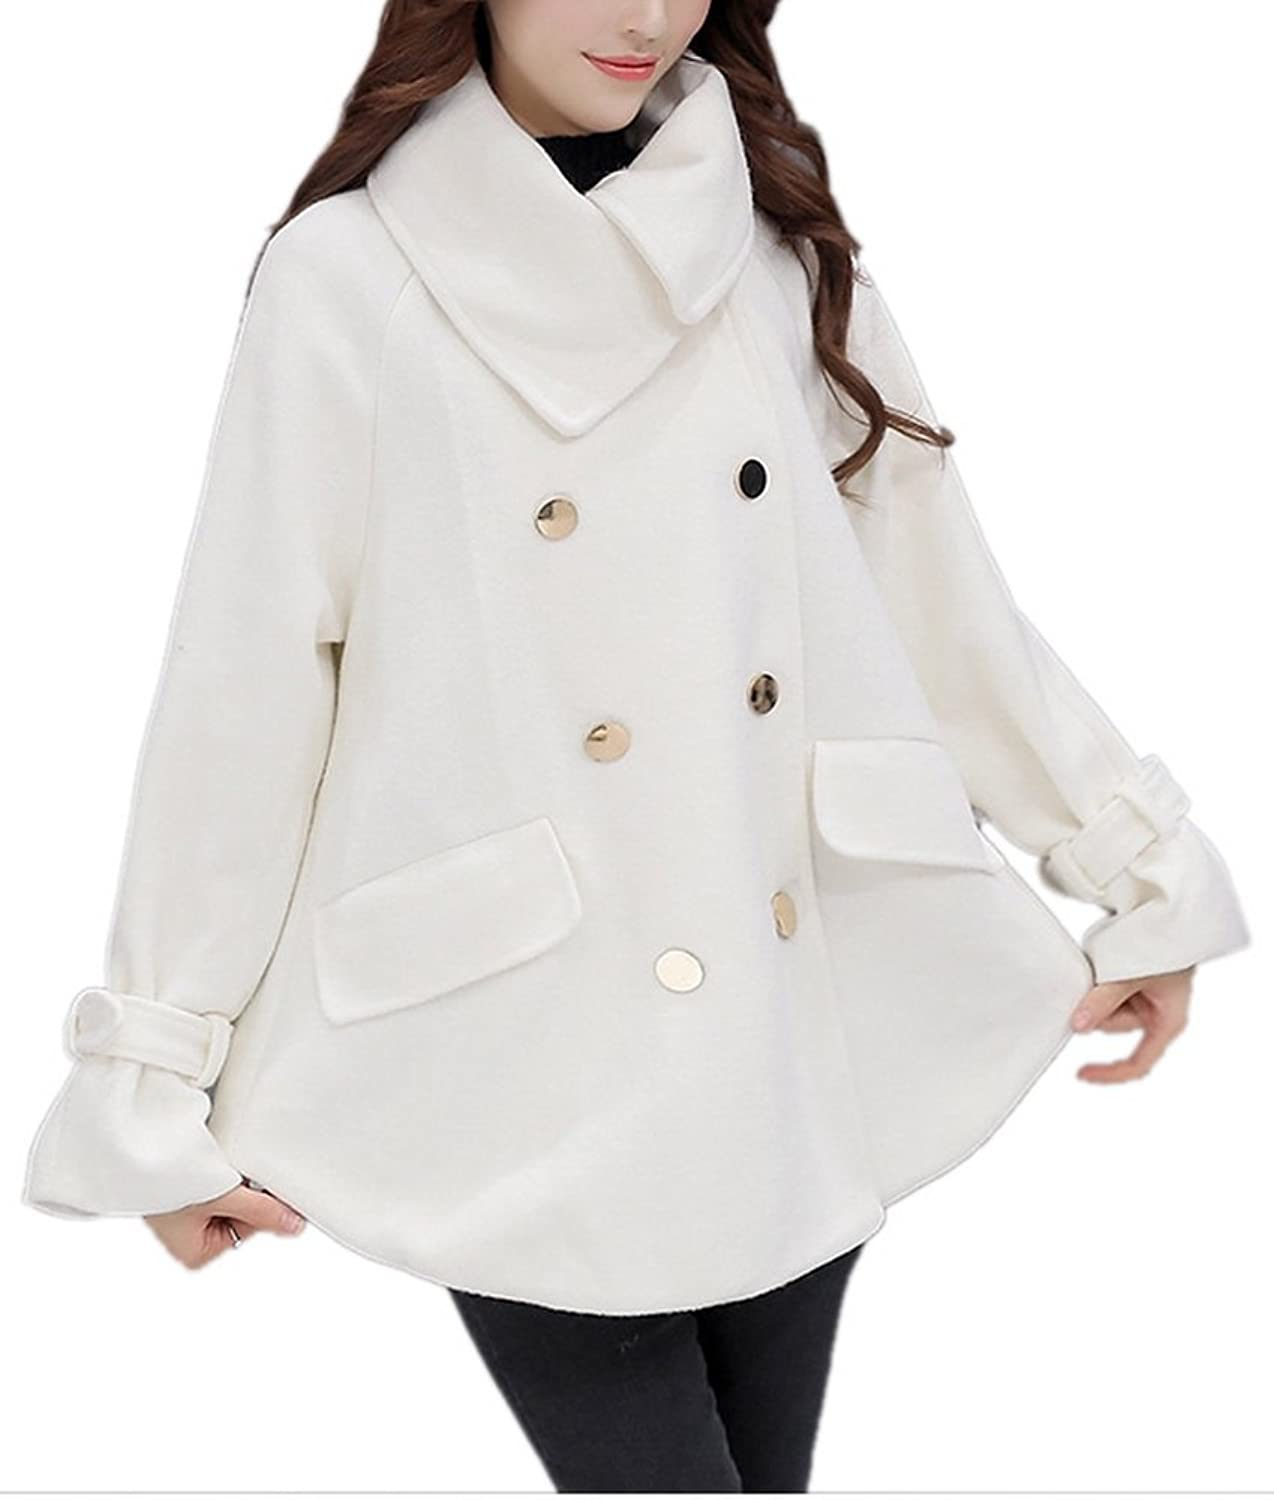 Lingswallow Women's Winter Hooded Double Breasted Wool Trench Coat Jacket White